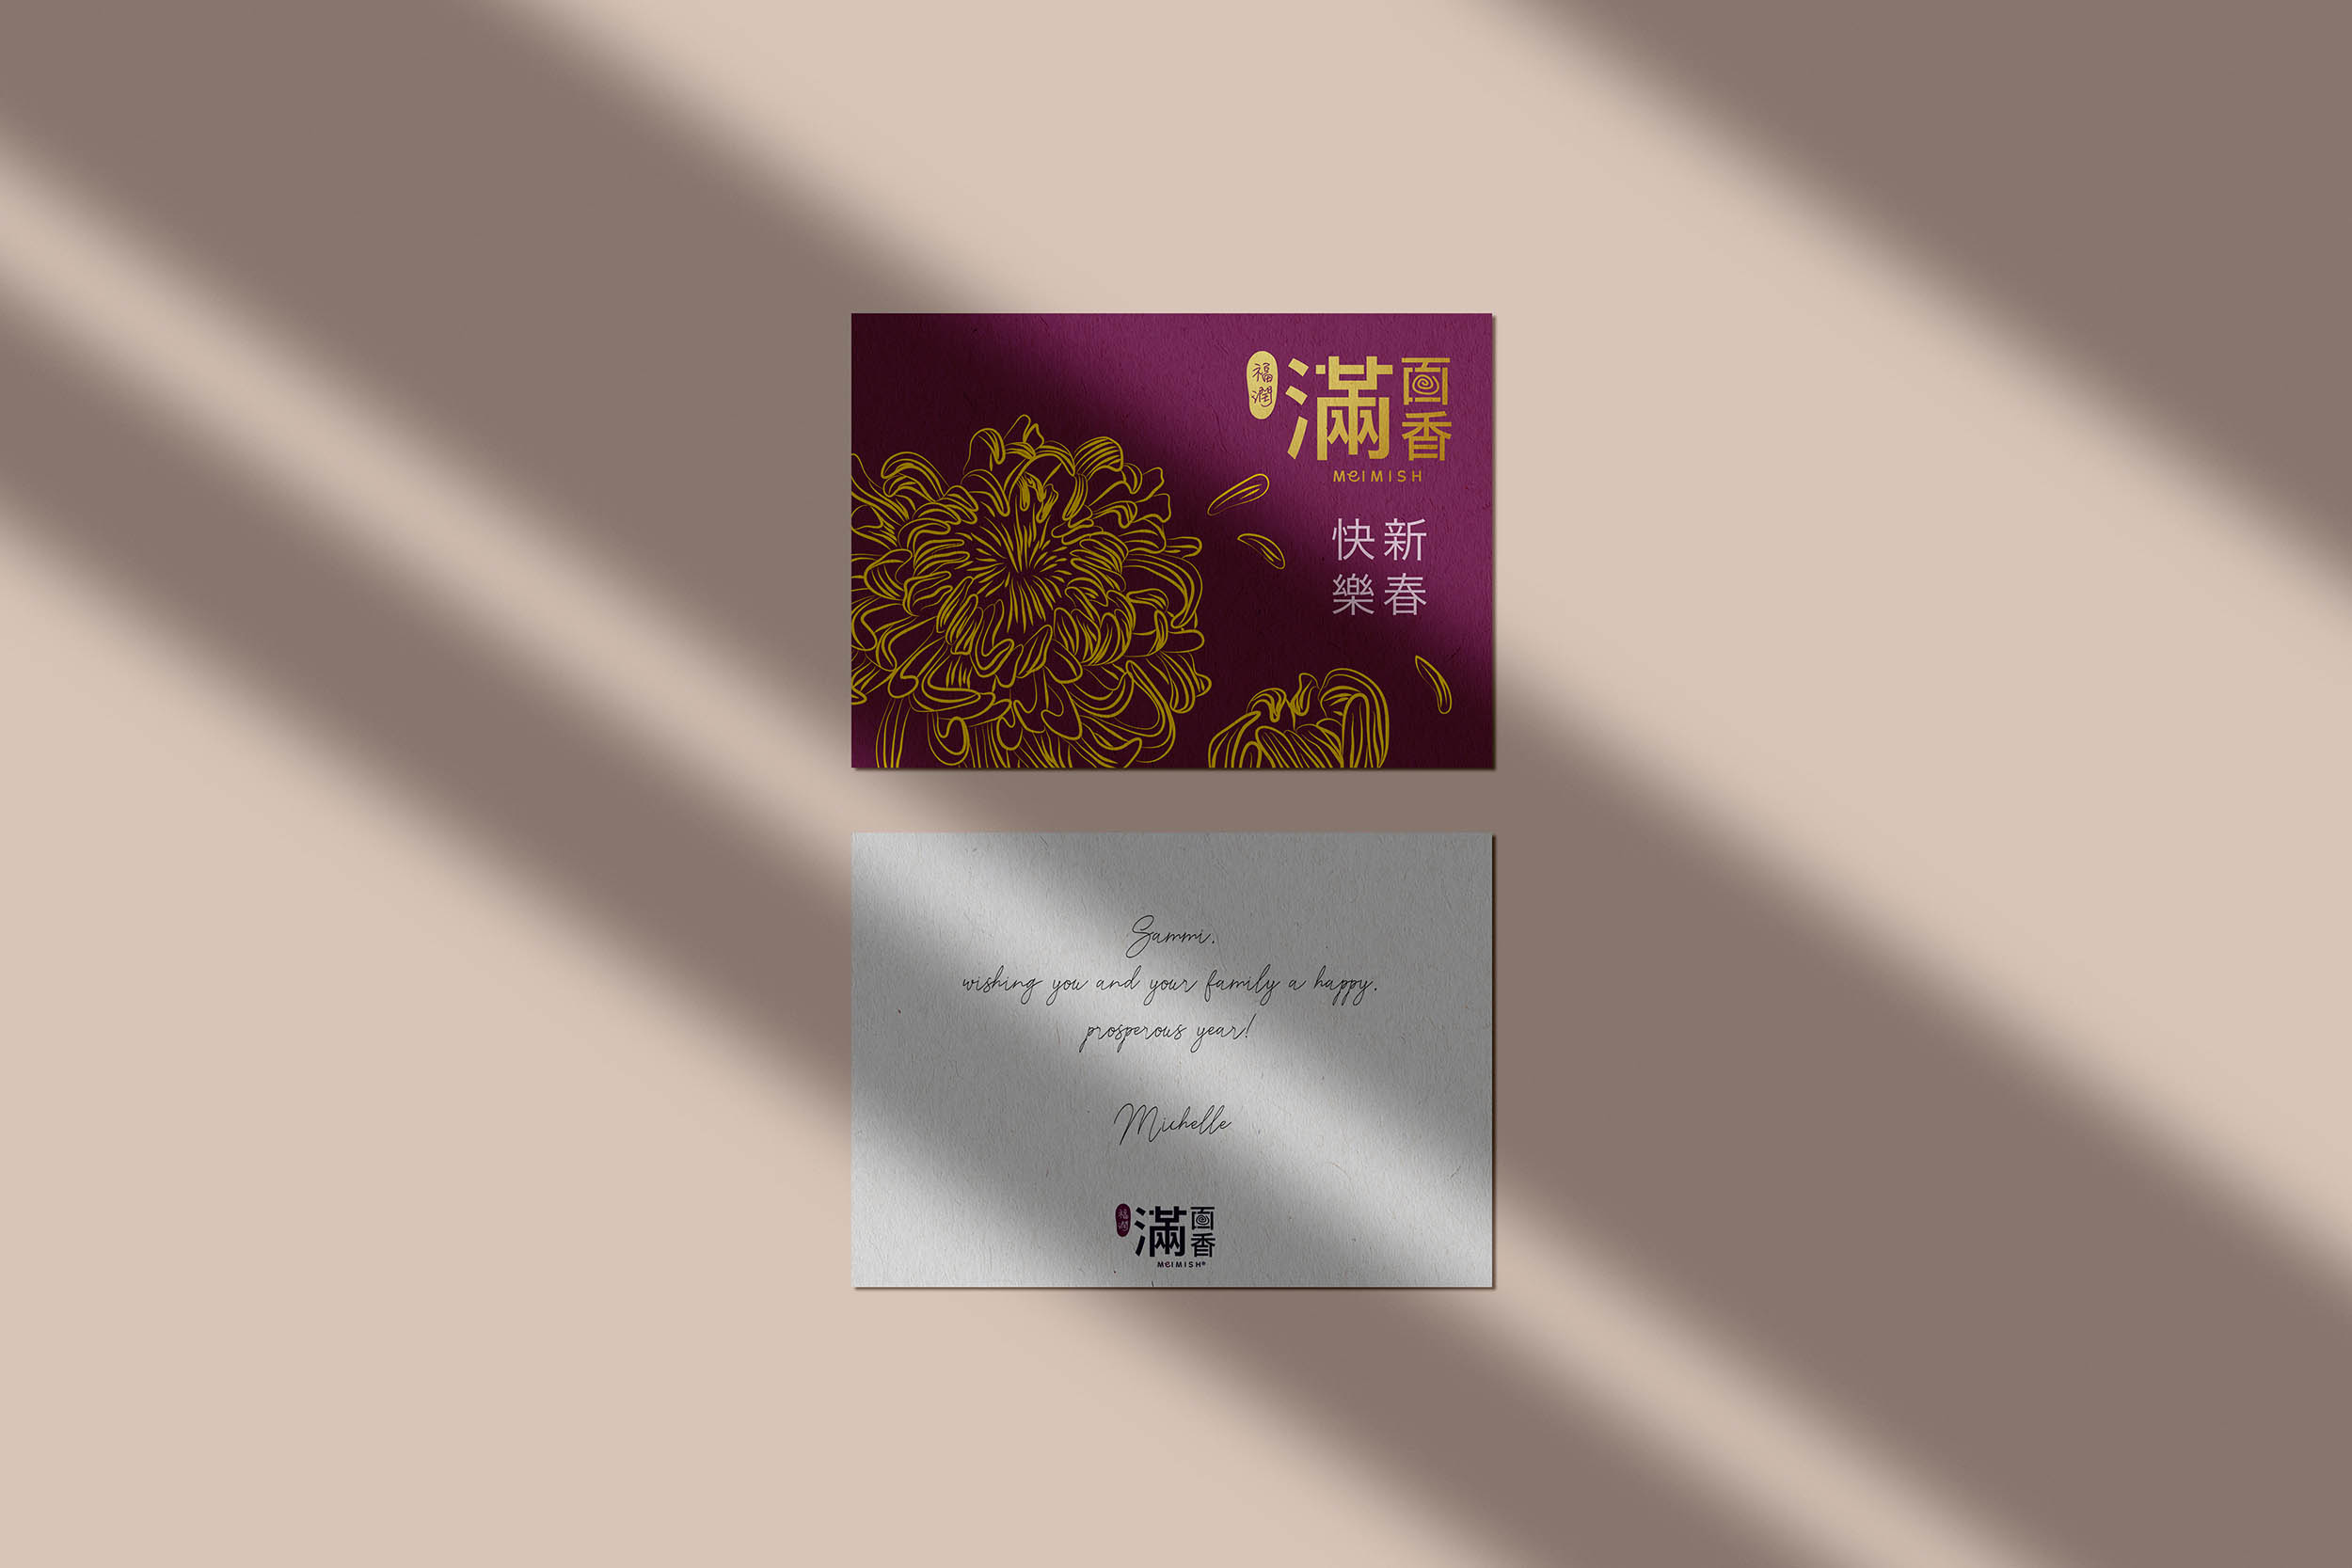 Meimish_Chinese New Year_Greeting Card